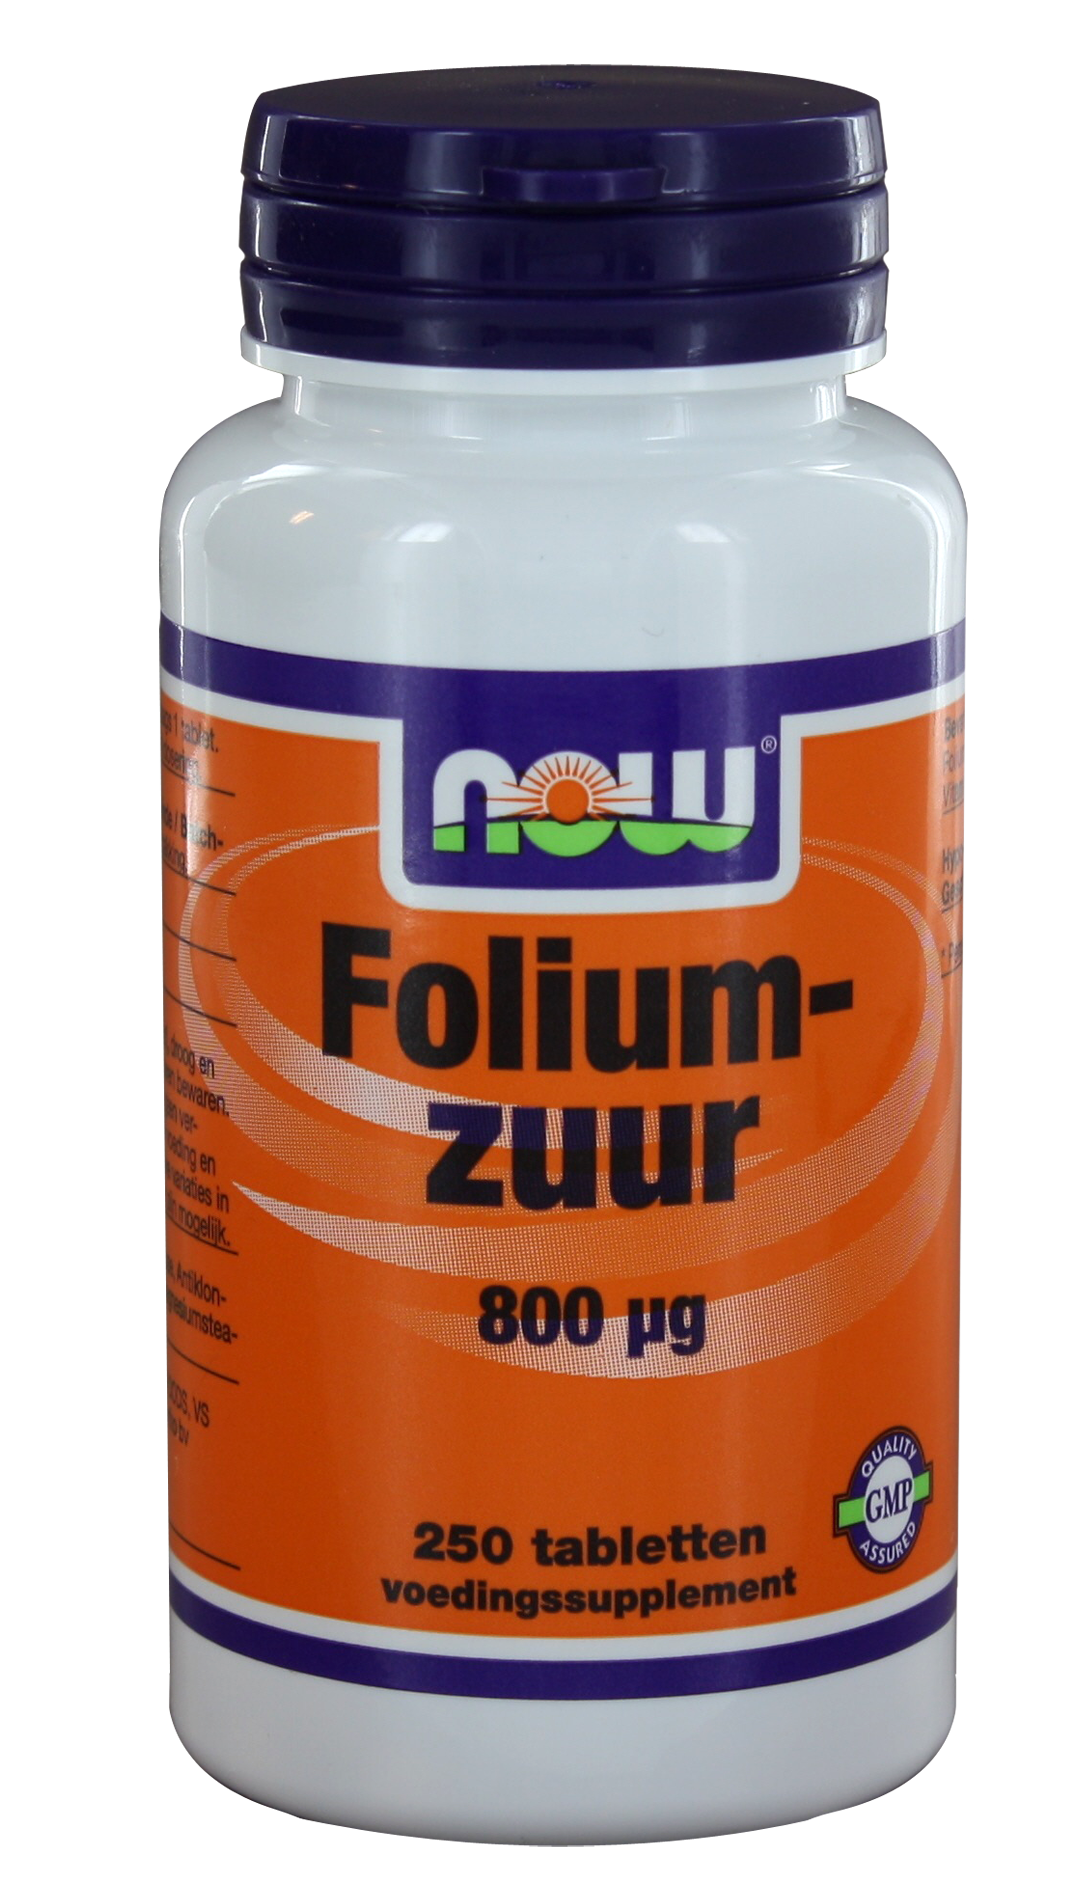 VitOrtho Now Foliumzuur 800 mcg Tabletten 250 st